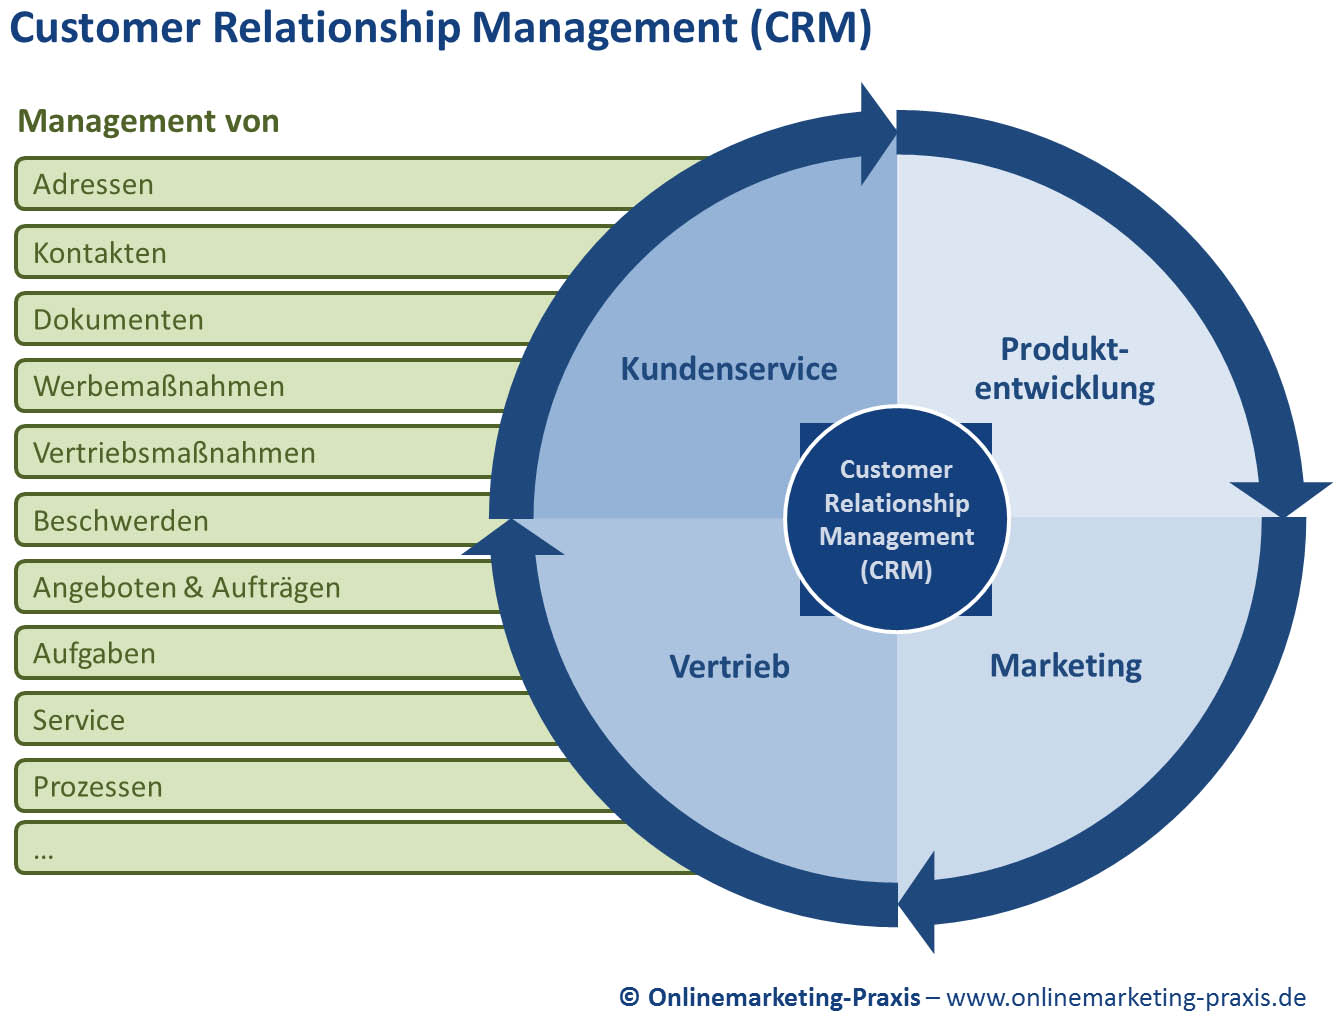 mba dissertation customer relationship management